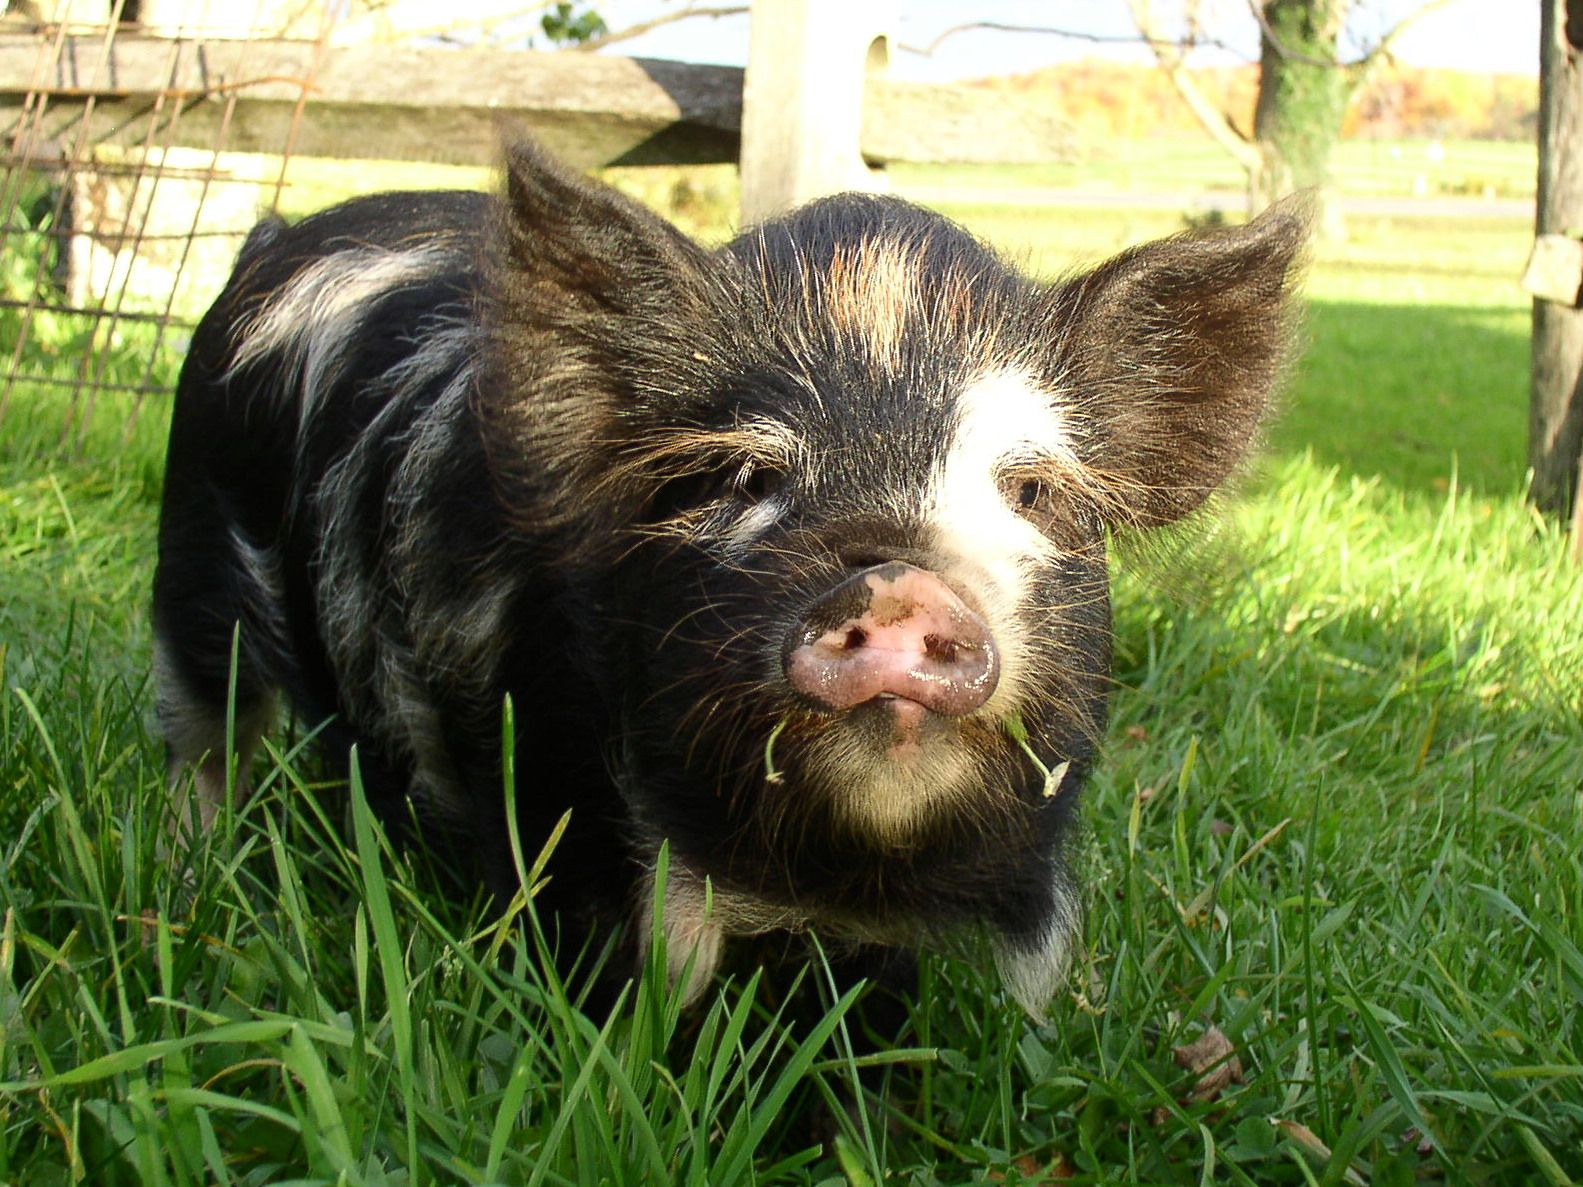 This is a kunekune pig. The breed is rare, but I will have